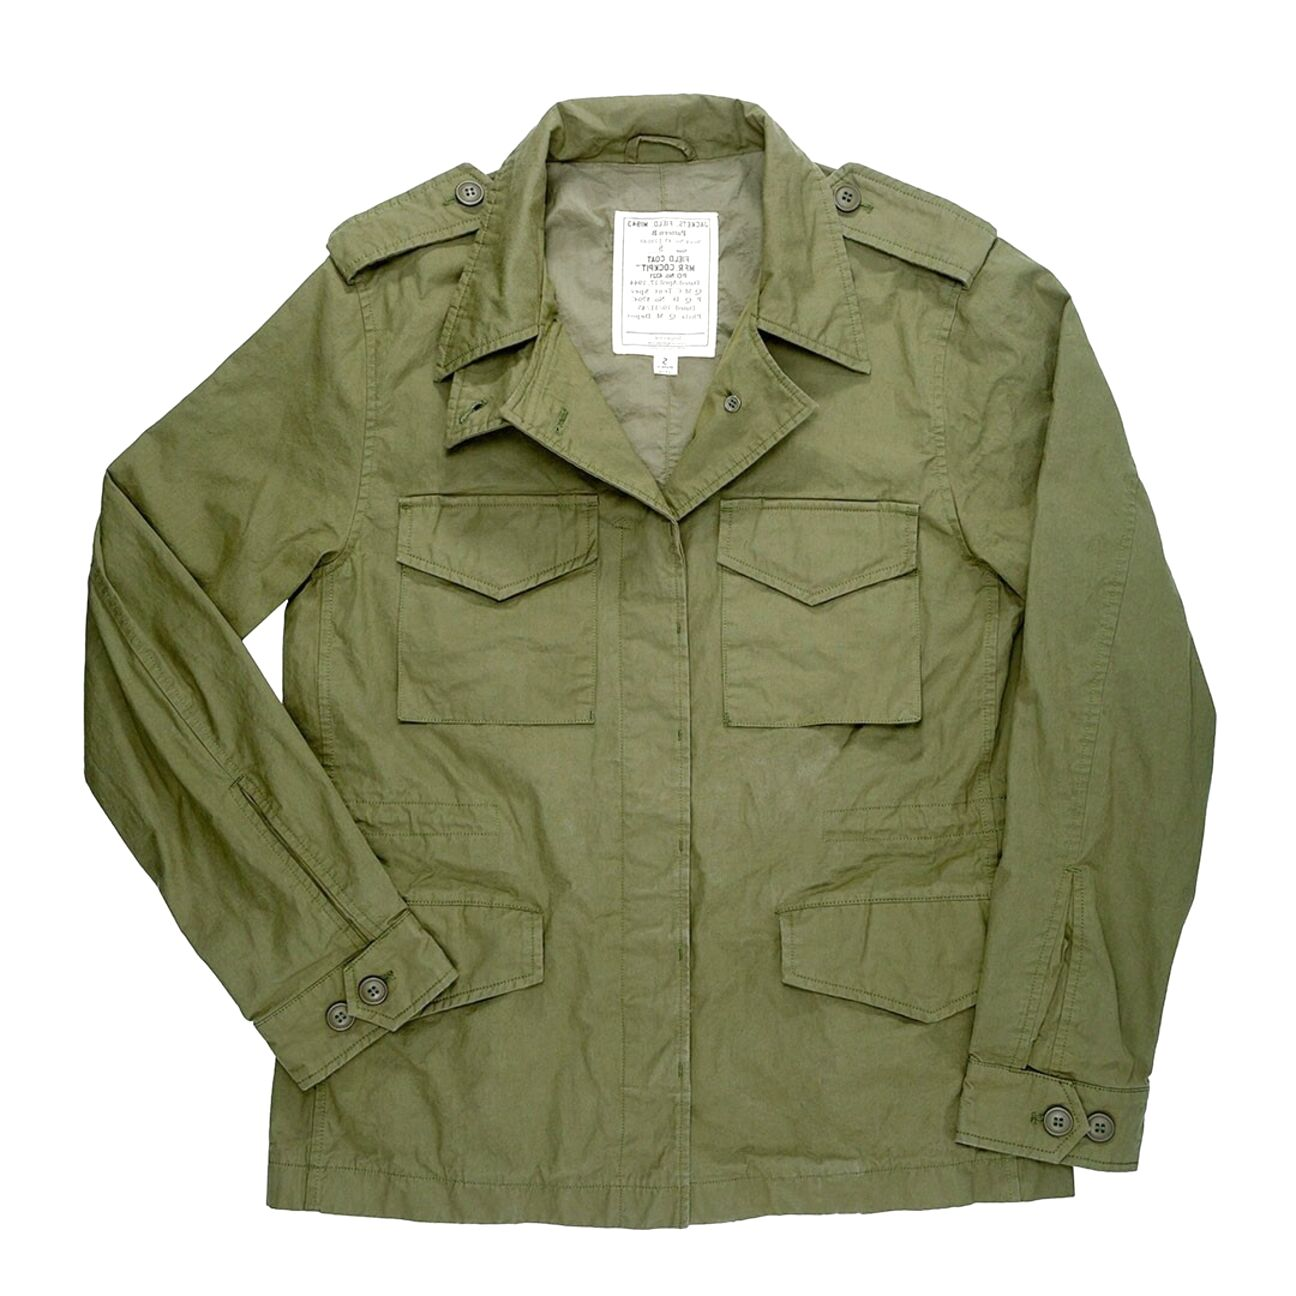 m43 jacket for sale